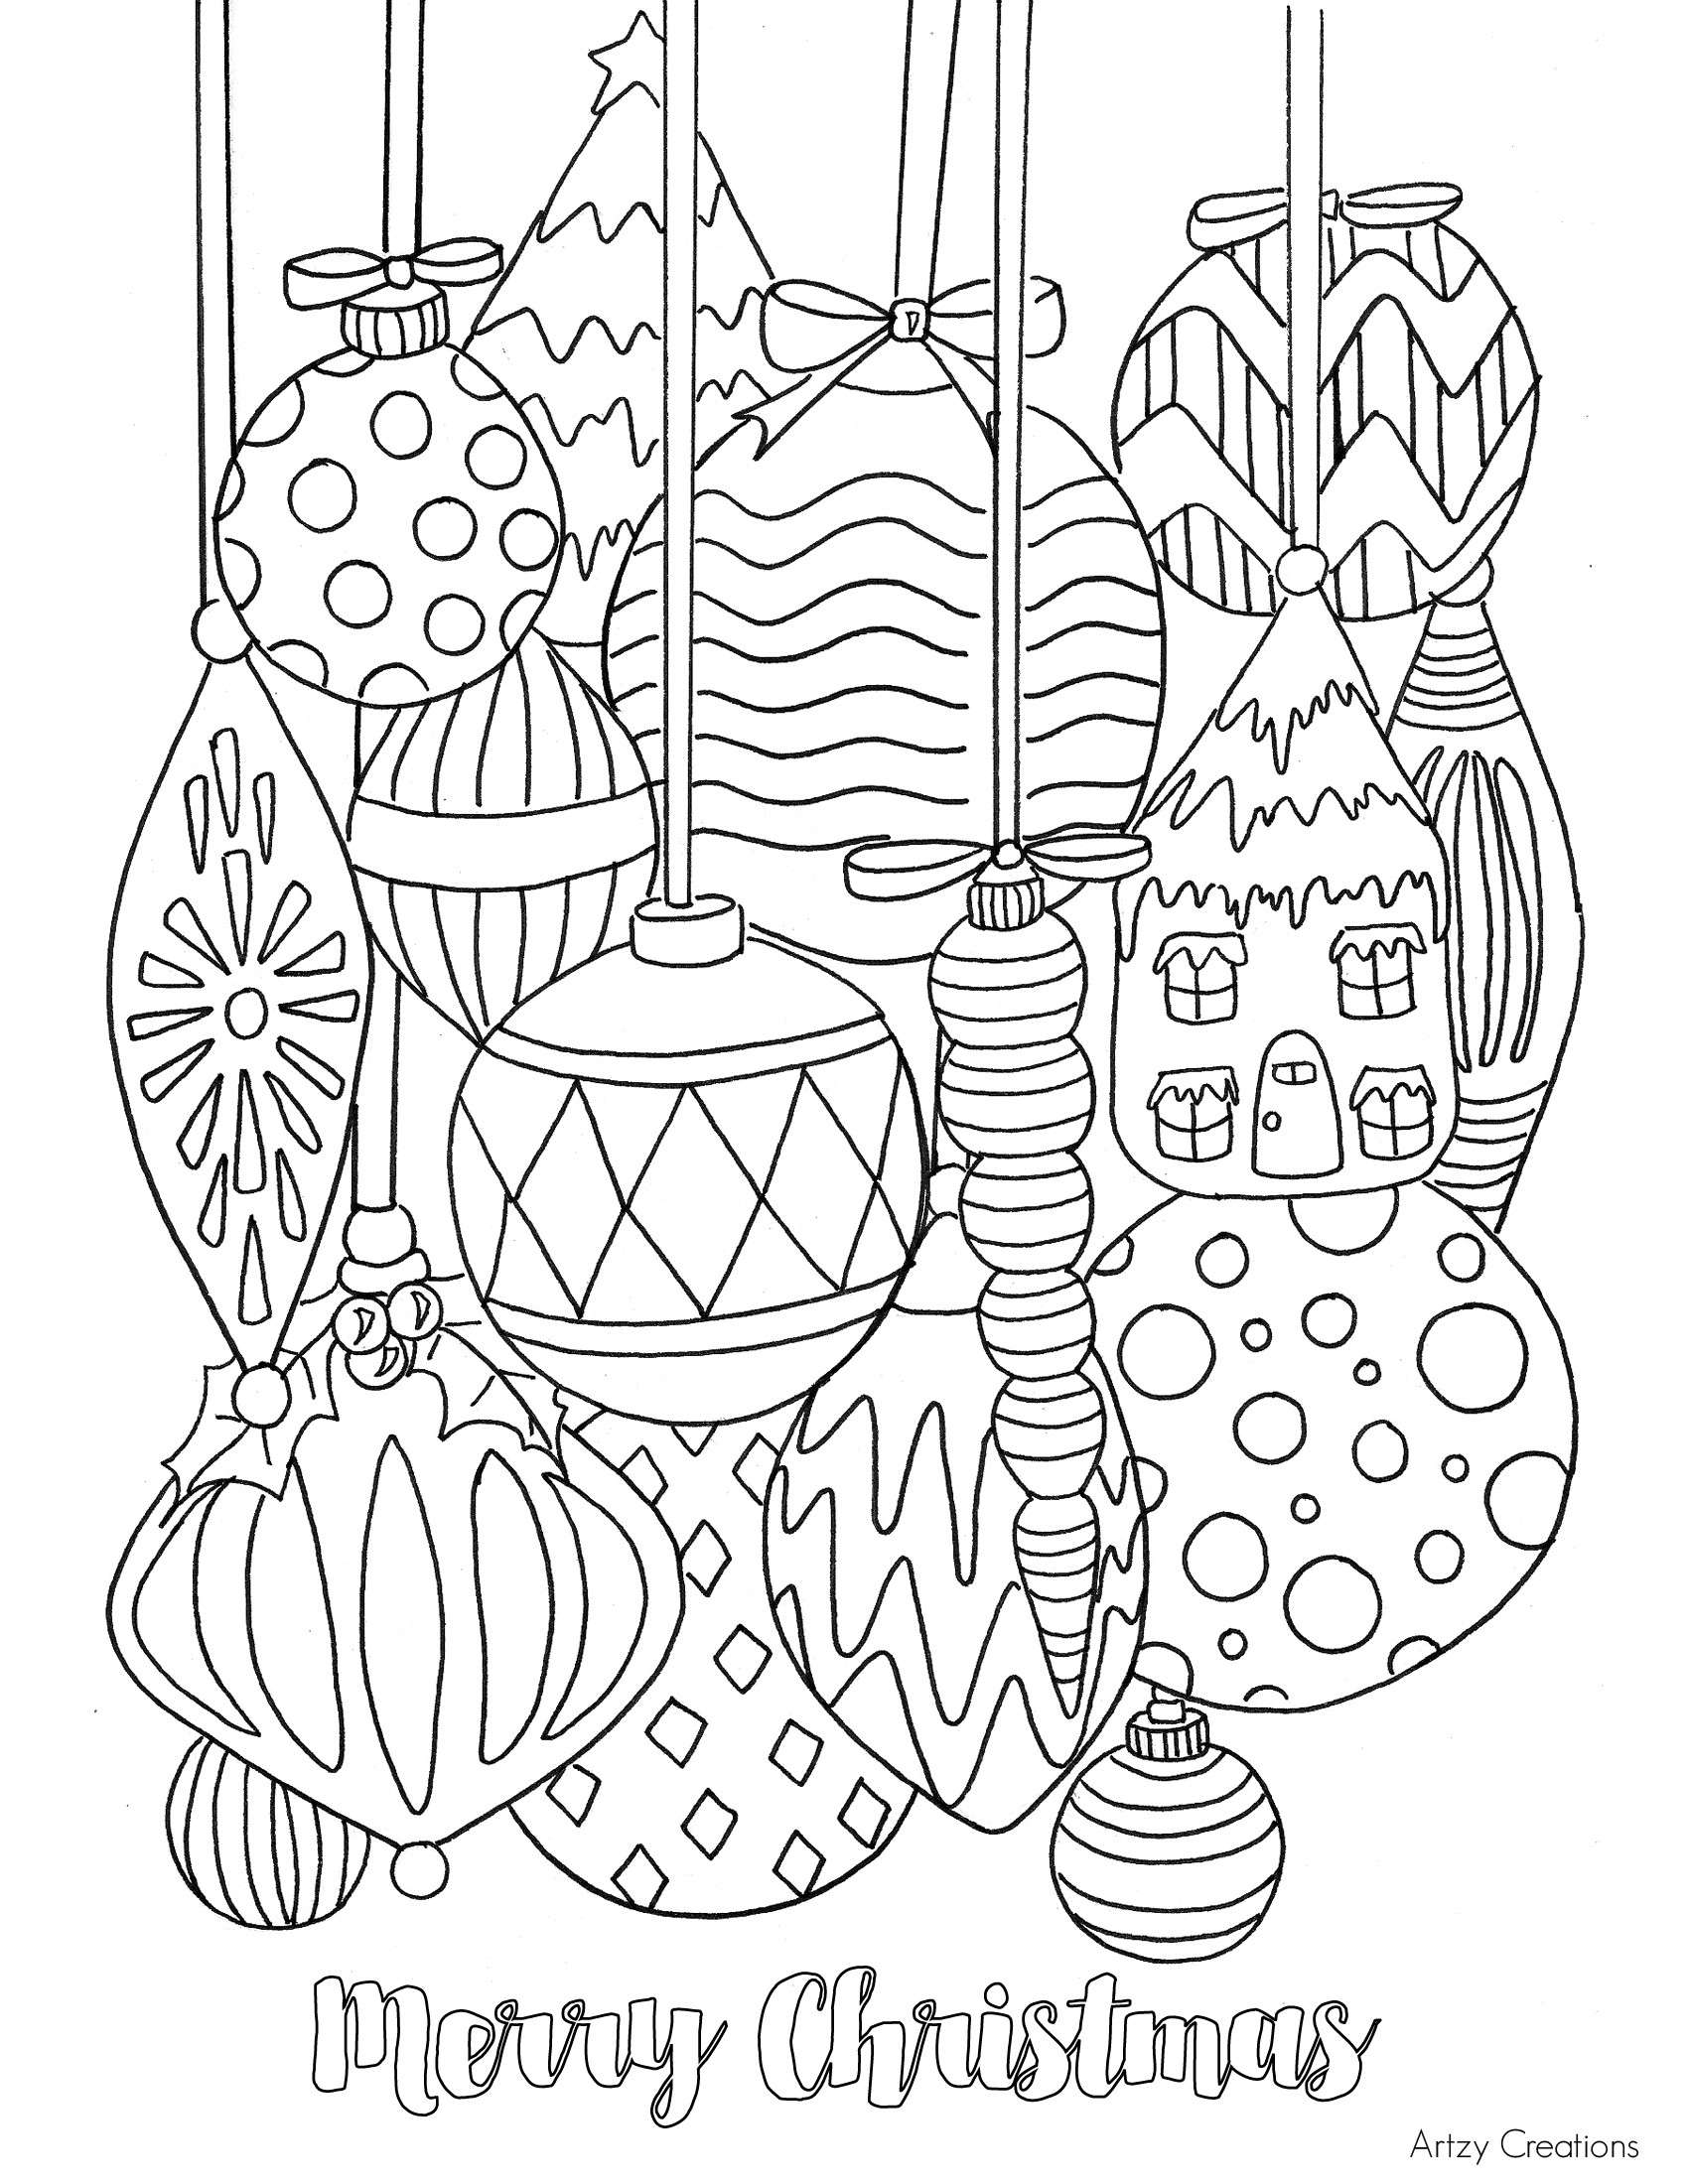 Christmas Coloring Pages For Preschoolers Printable With Card Preschool